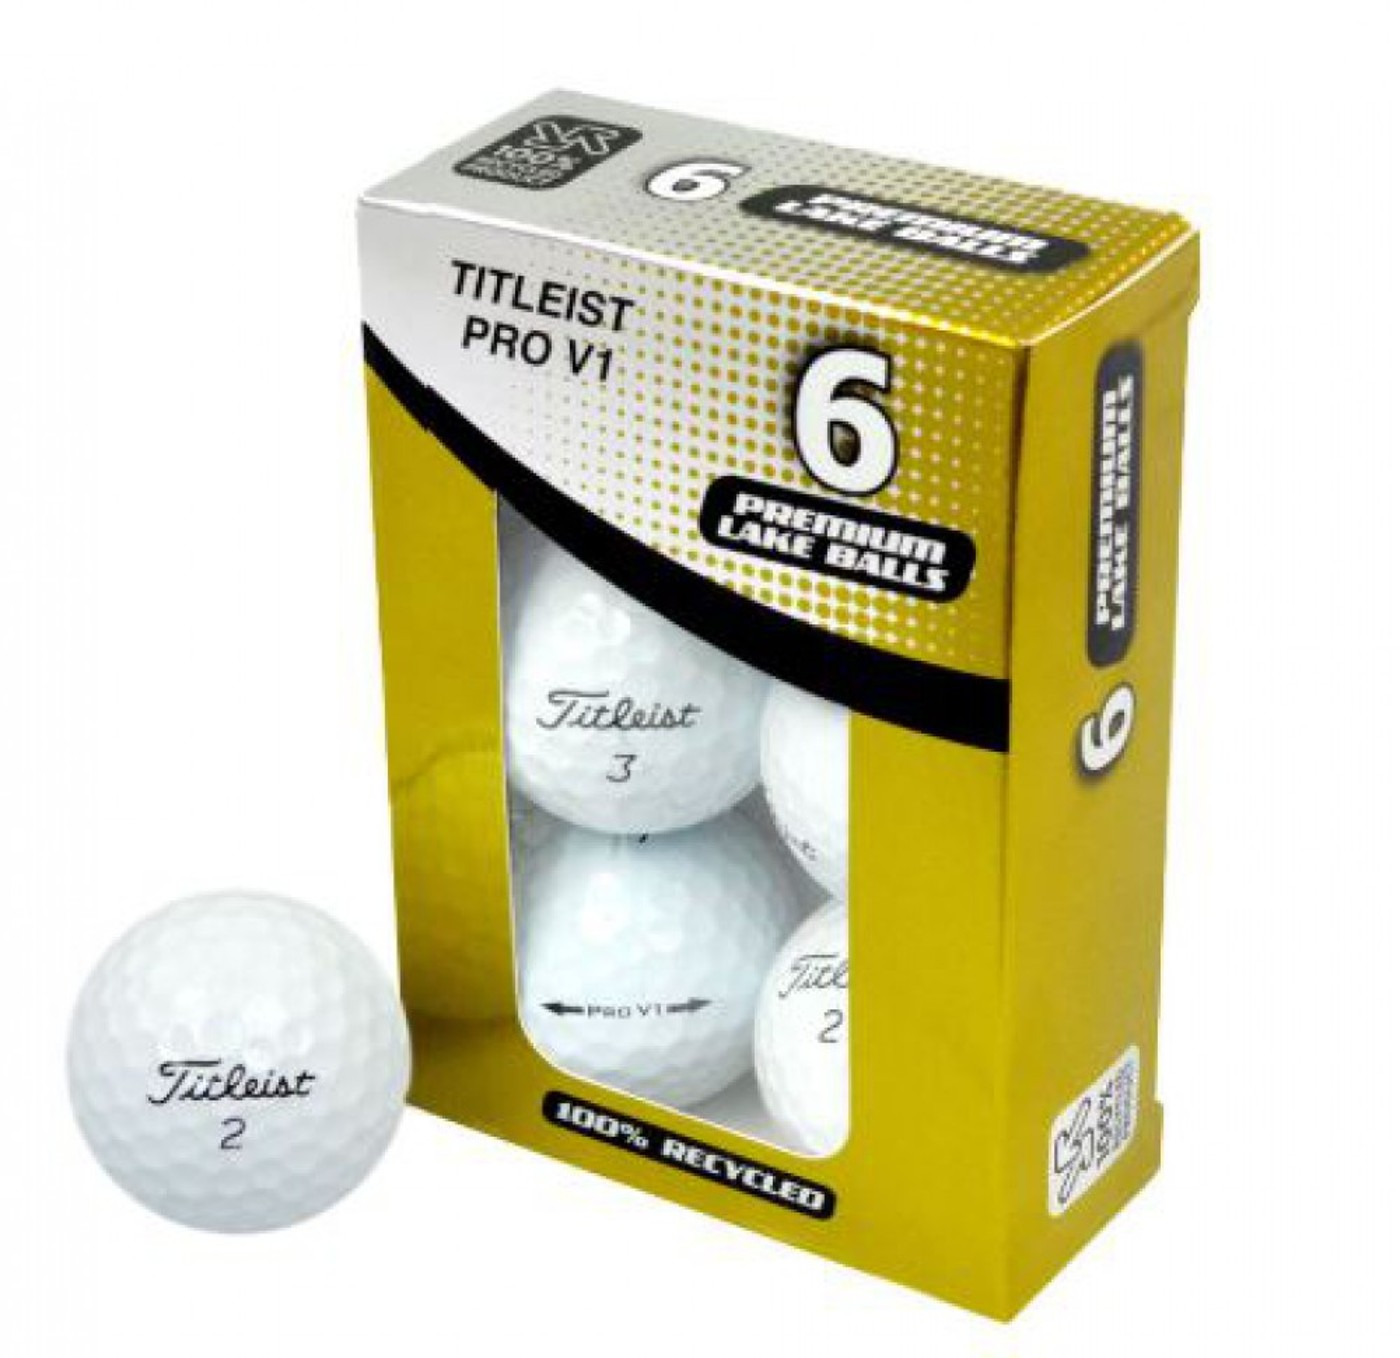 Titleist Golf Balls PROV1 / X